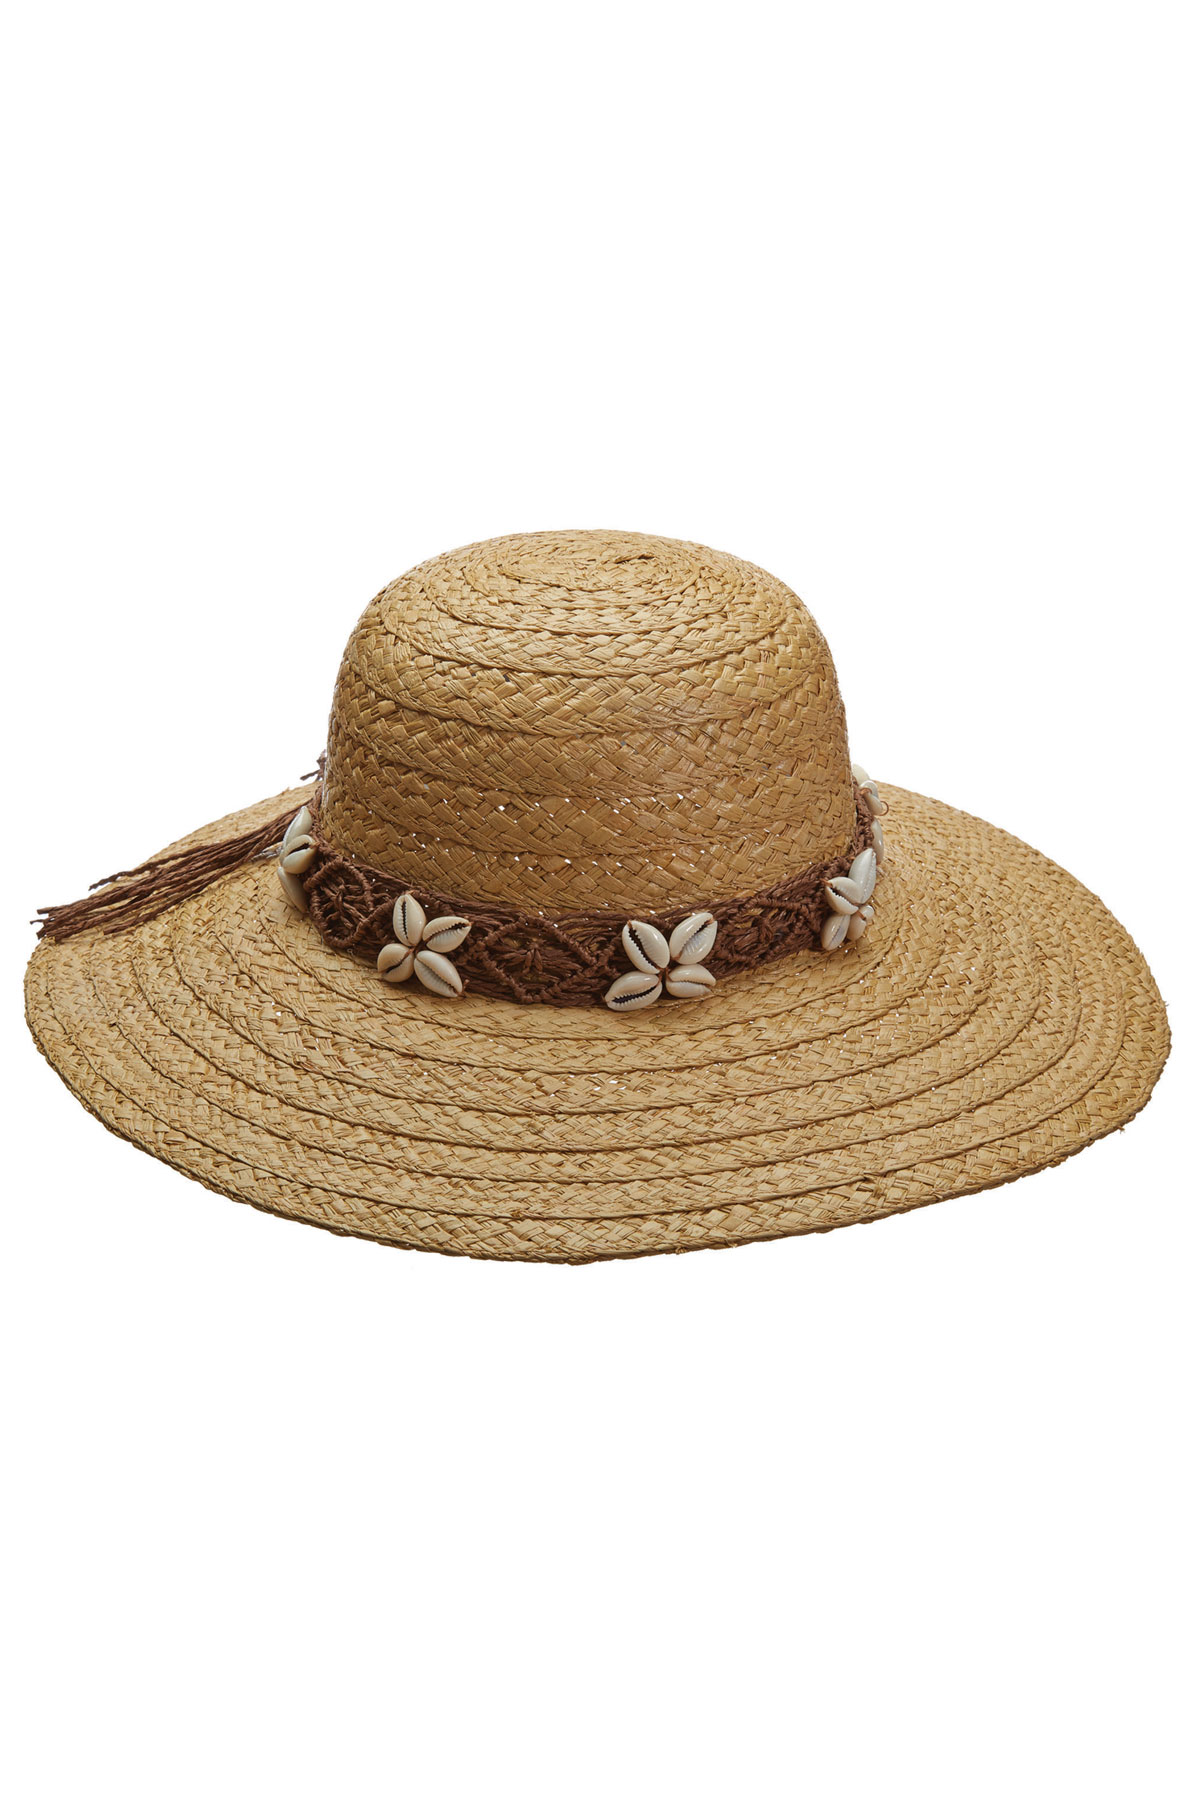 Woven Cowrie Shell Trim Hat - Natural 1